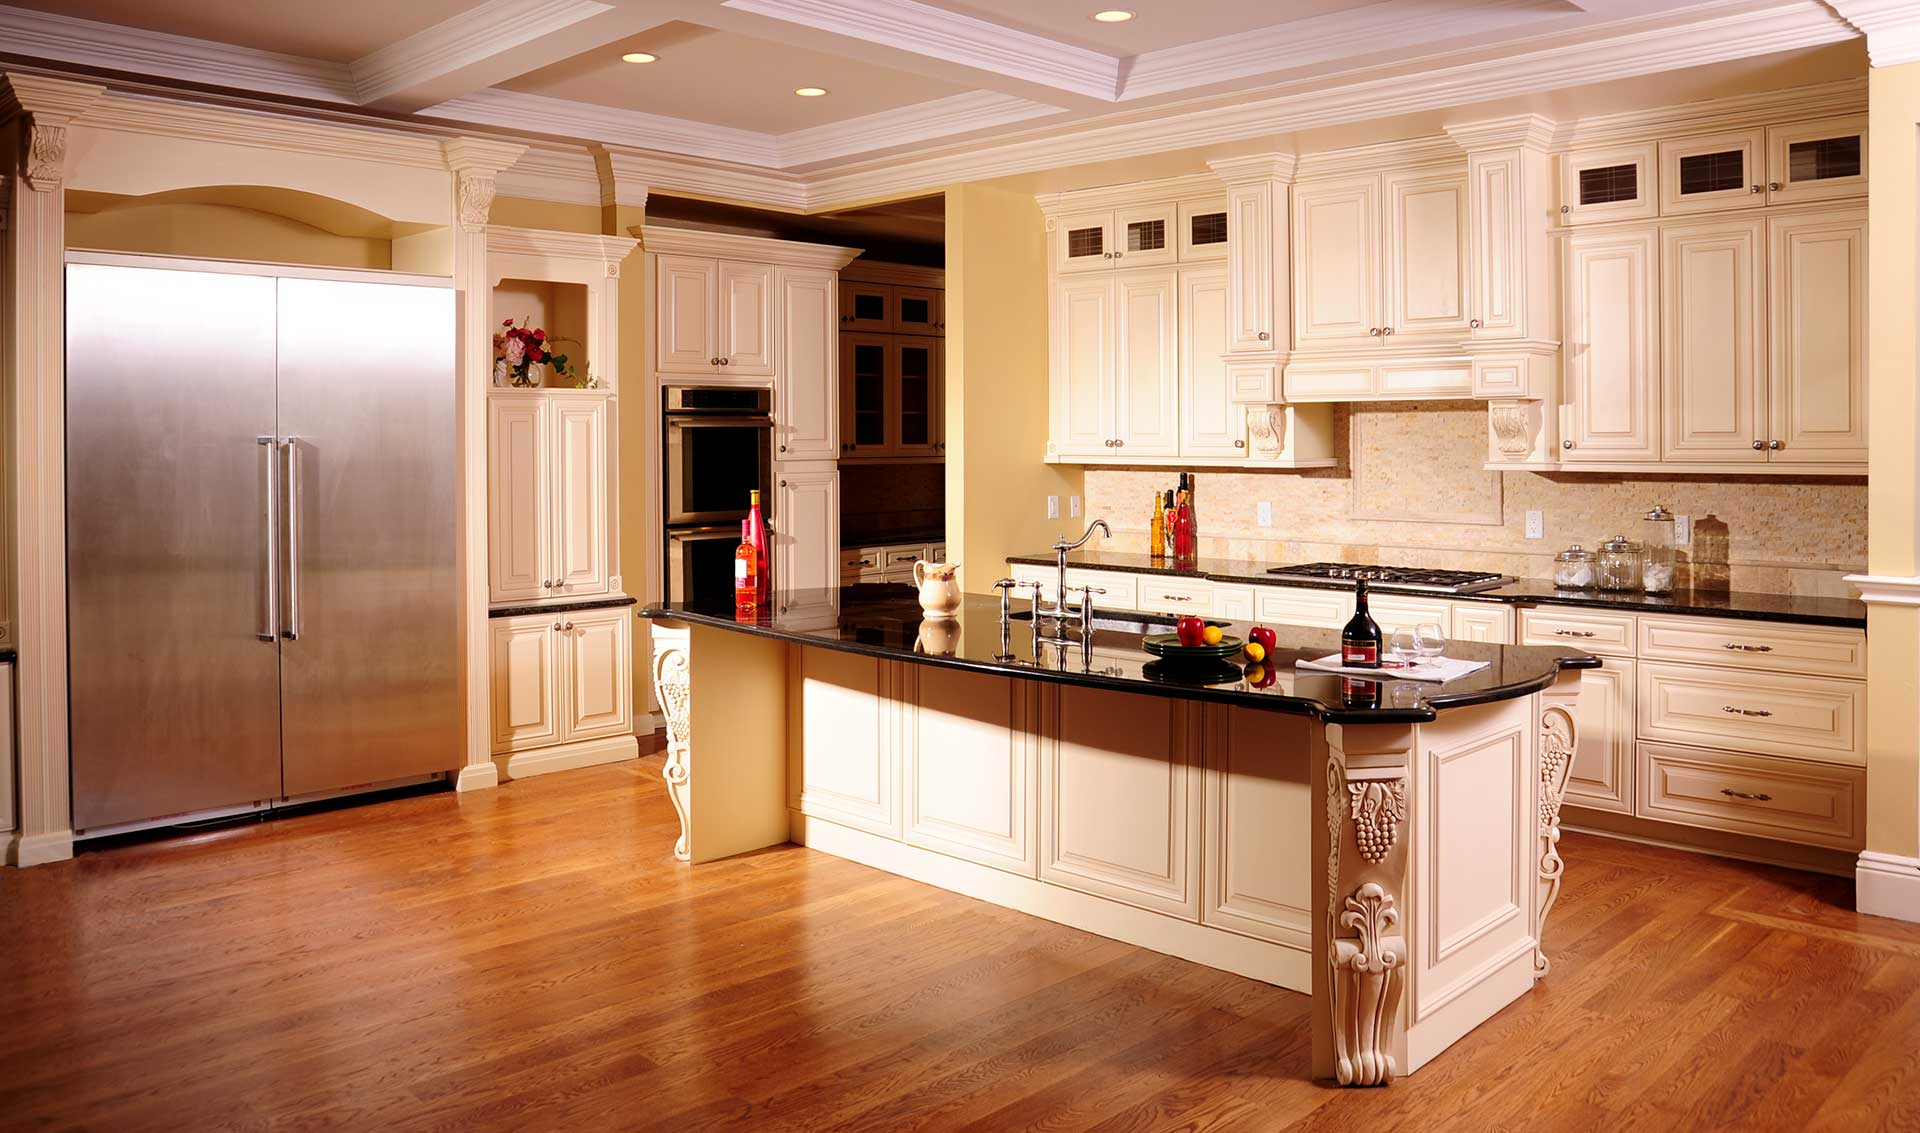 mkcabinet kitchen cabinets chicago Counter Top Cabinet Expert